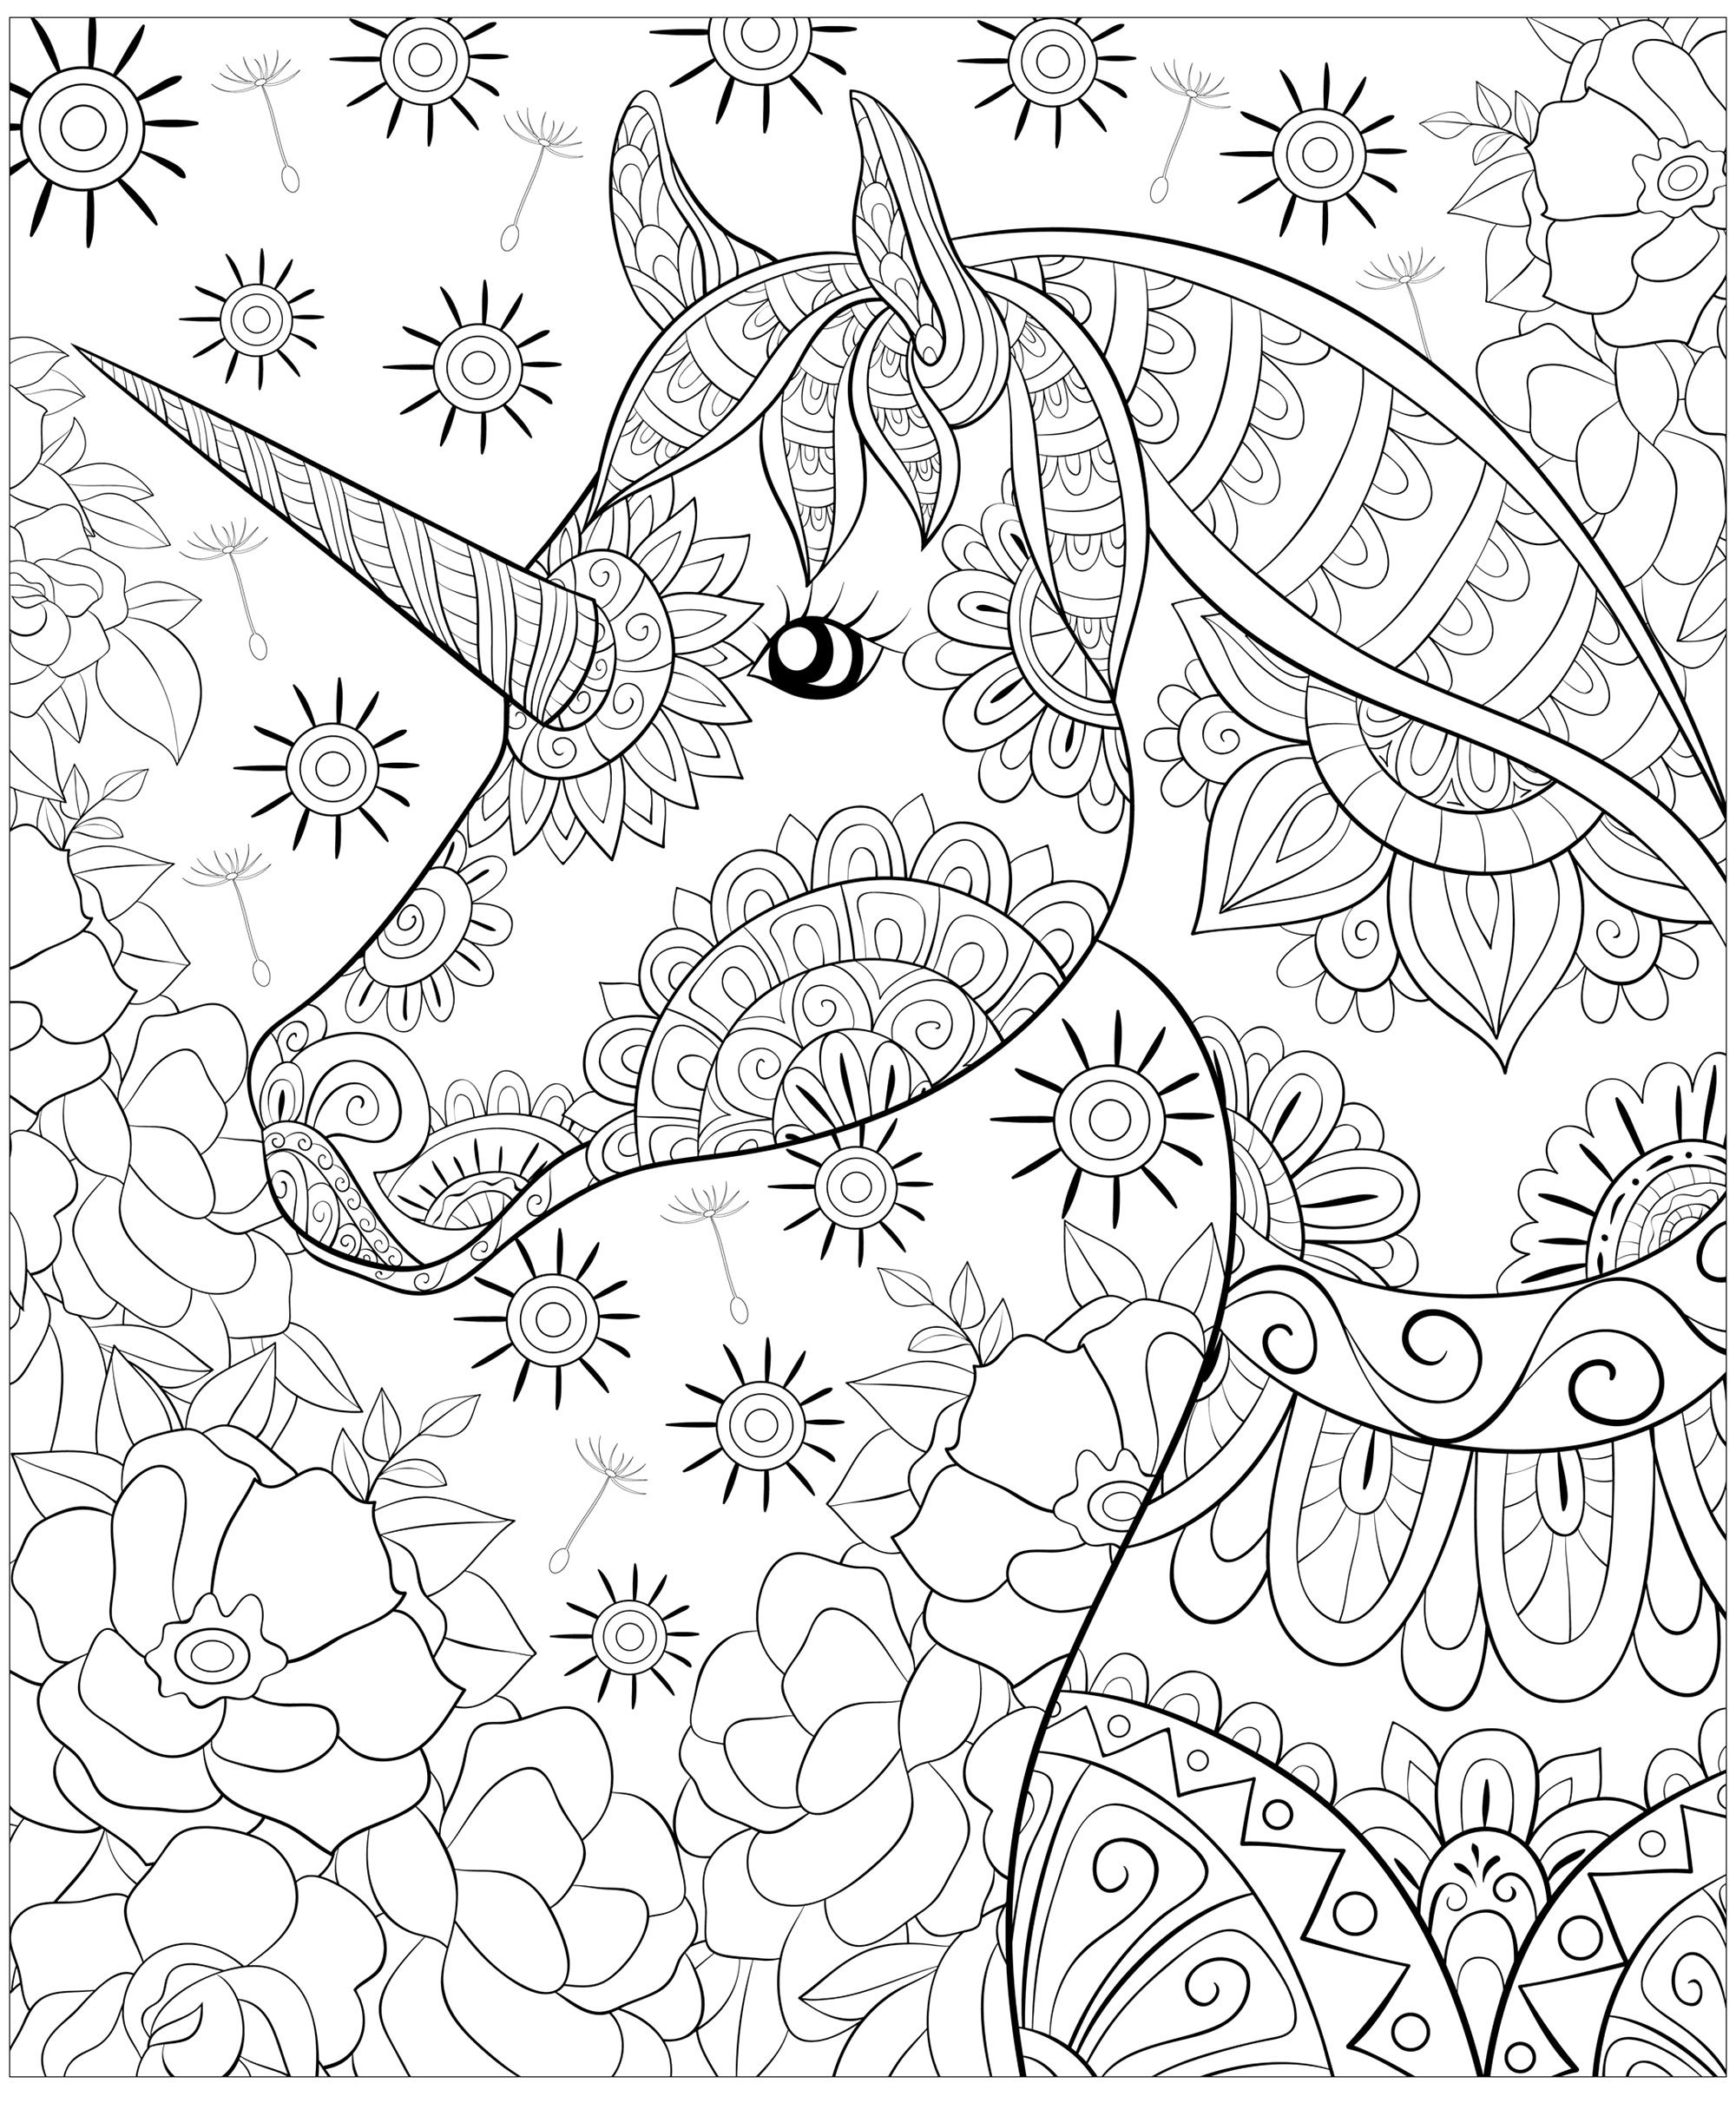 Cute unicorn and flowes - Unicorns Adult Coloring Pages